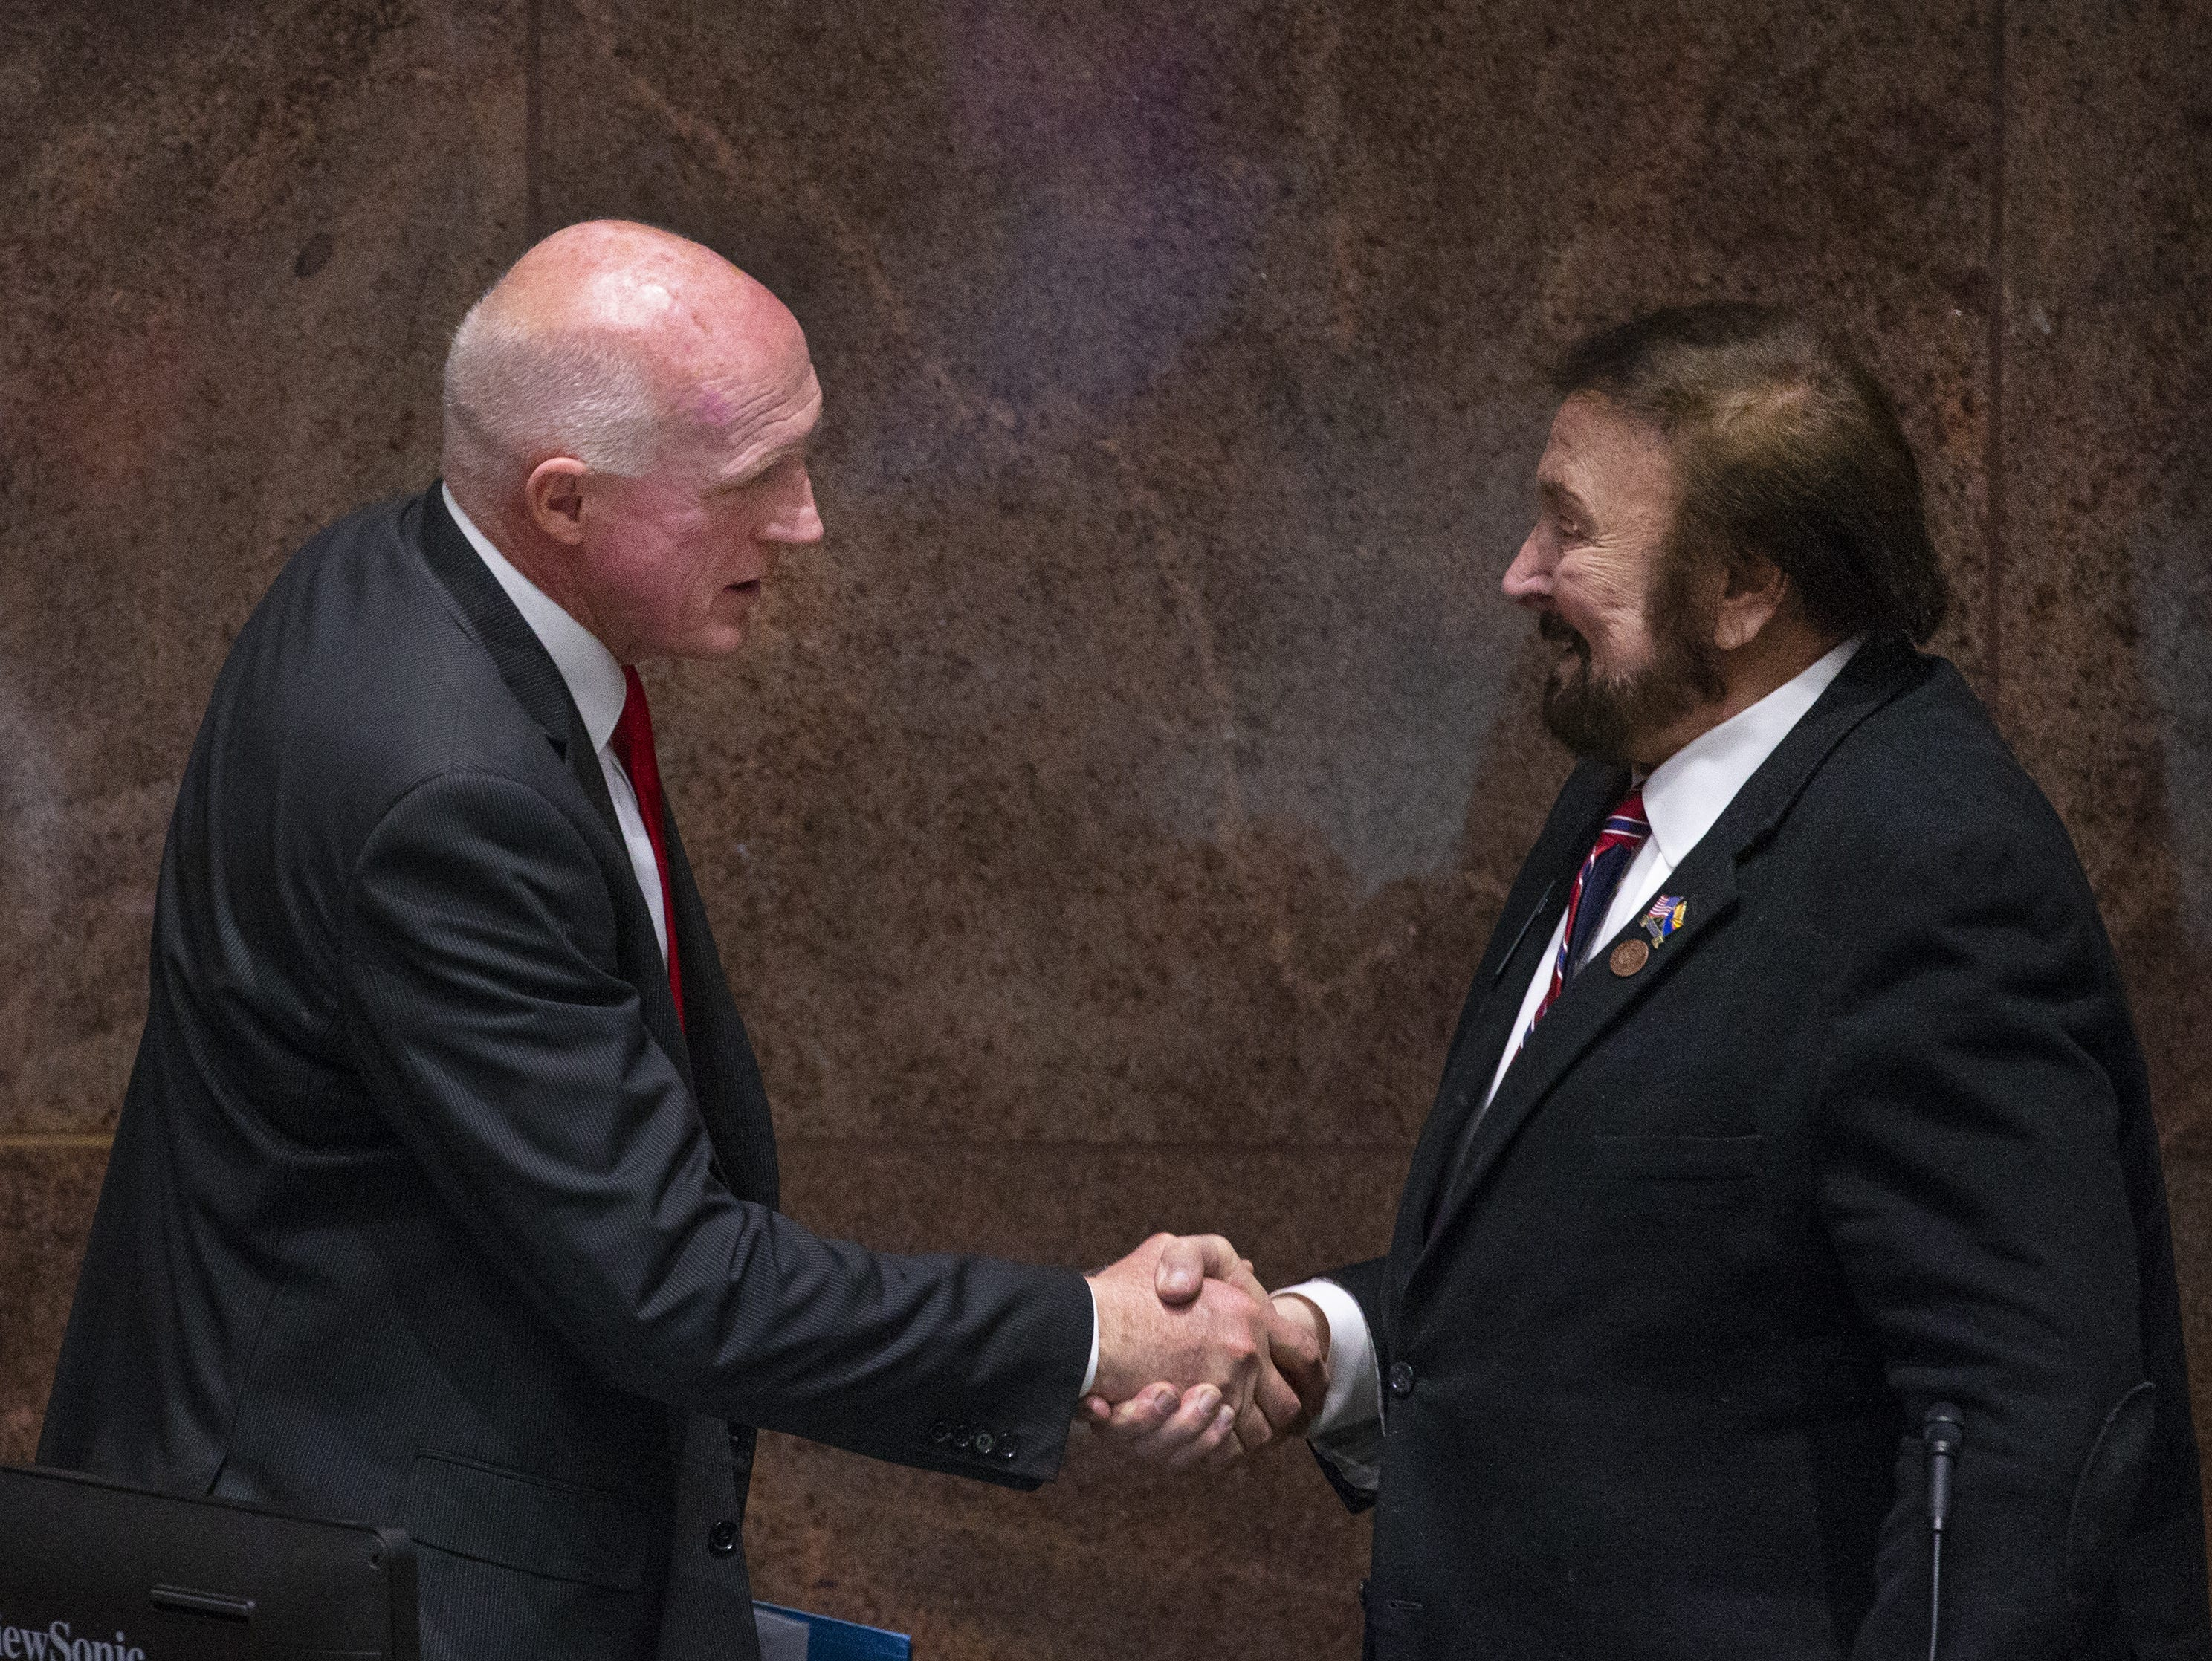 State Rep. Rusty Bowers, R-Mesa,  is congratulated by Rep. Jay Lawrence, R-Scottsdale, as Bowers takes his seat as House Speaker. Gov. Doug Ducey will deliver his State of the State address to the Legislature and guests gathered in the House of Representatives at the State Capitol, Jan. 14, 2019.